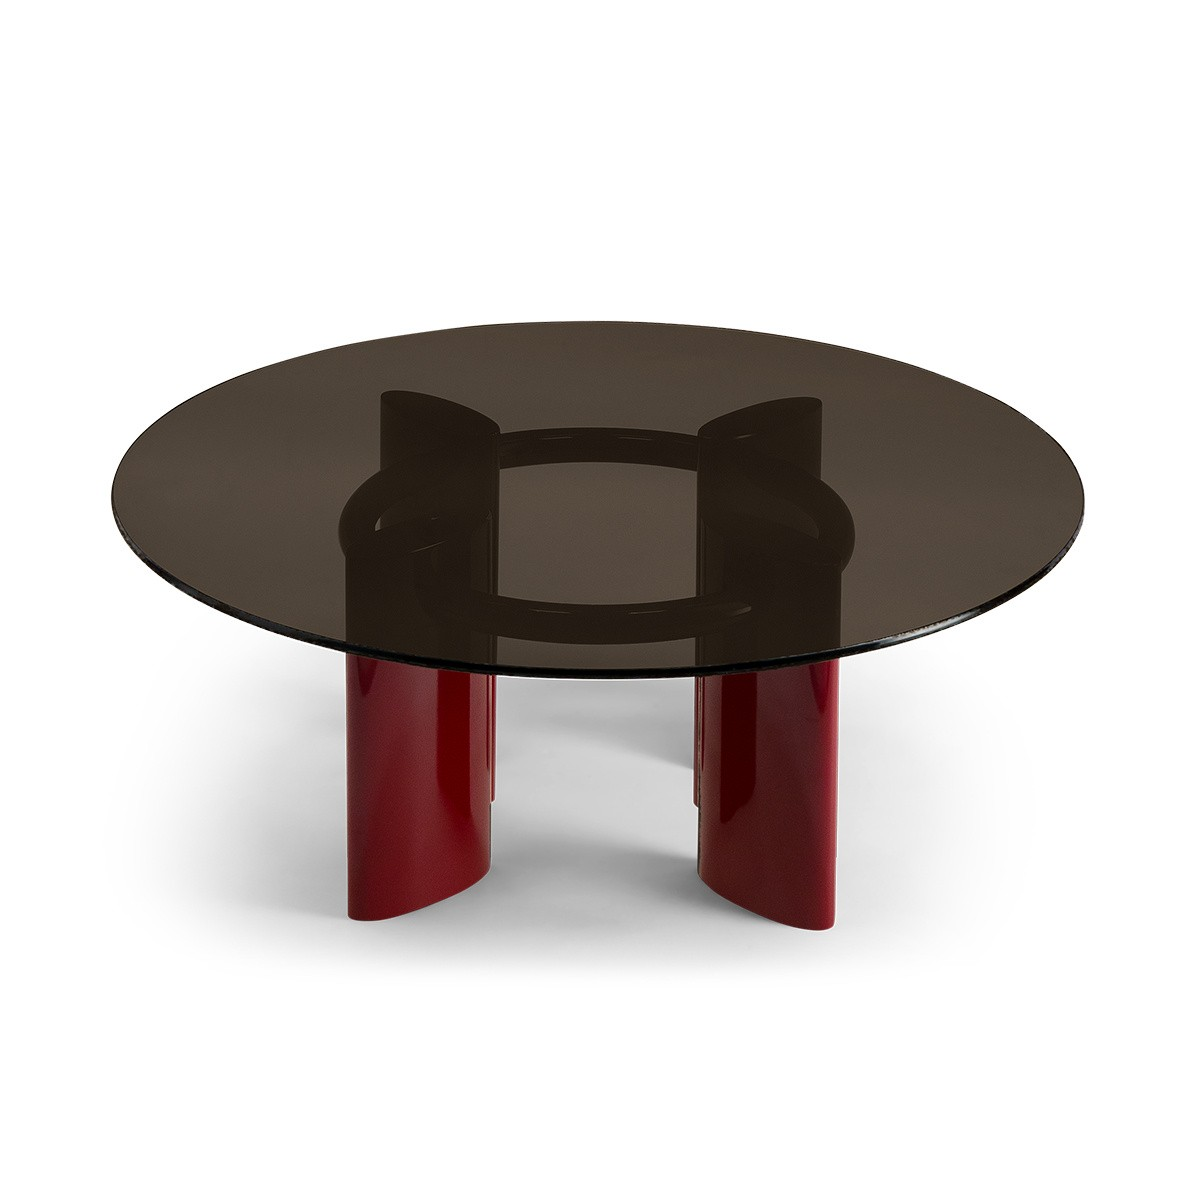 Carlotta Coffee Table, Smoked Glass Top and Red Legs